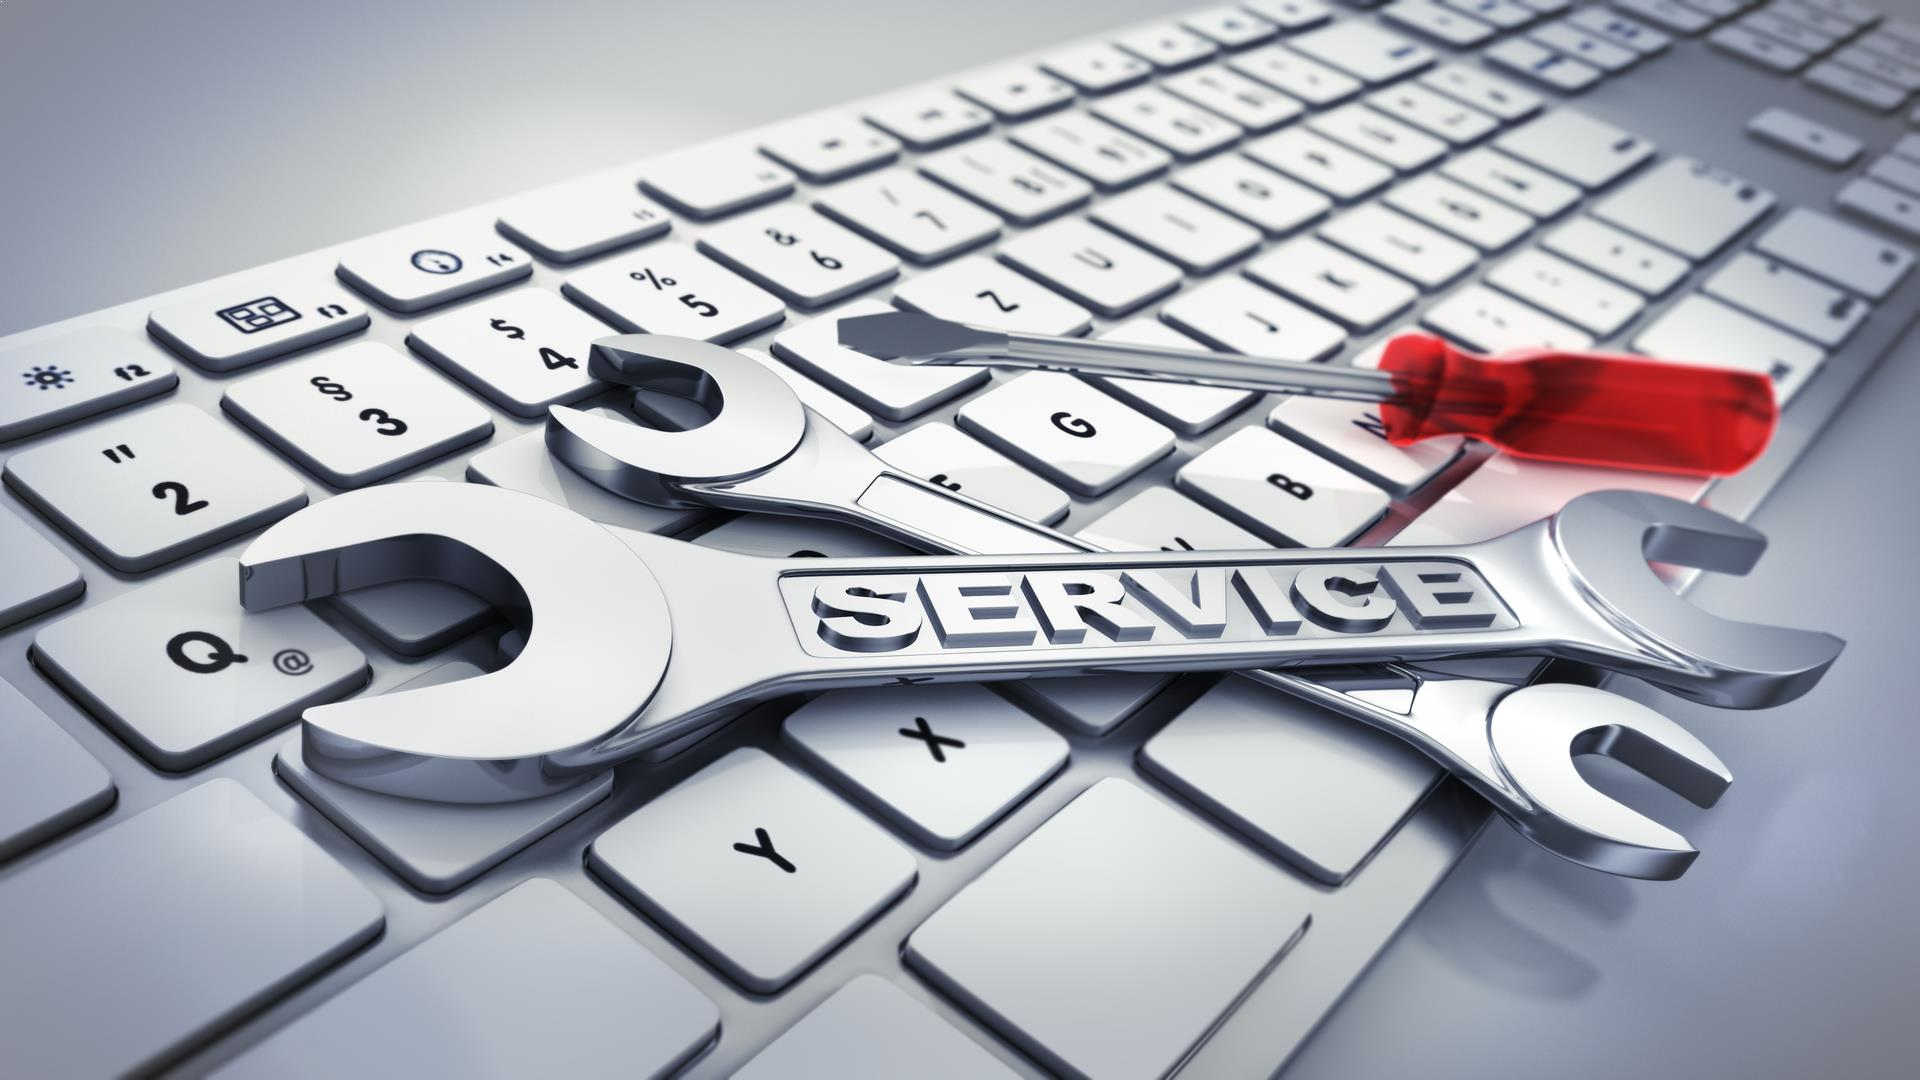 Sell a service